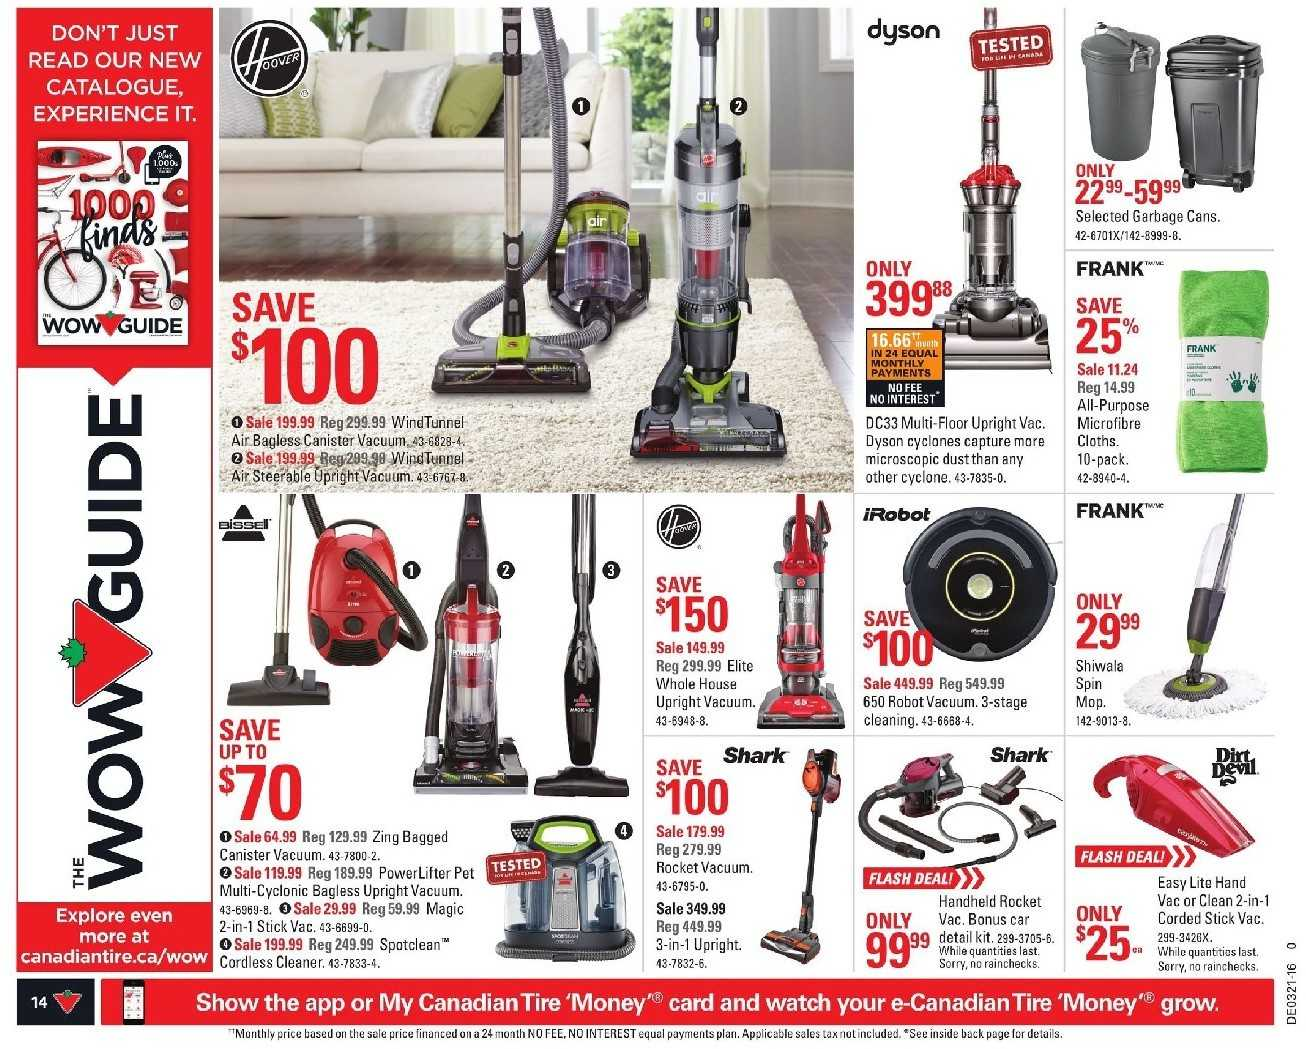 Canadian Tire Flyer Hoover Vacuum May 2016